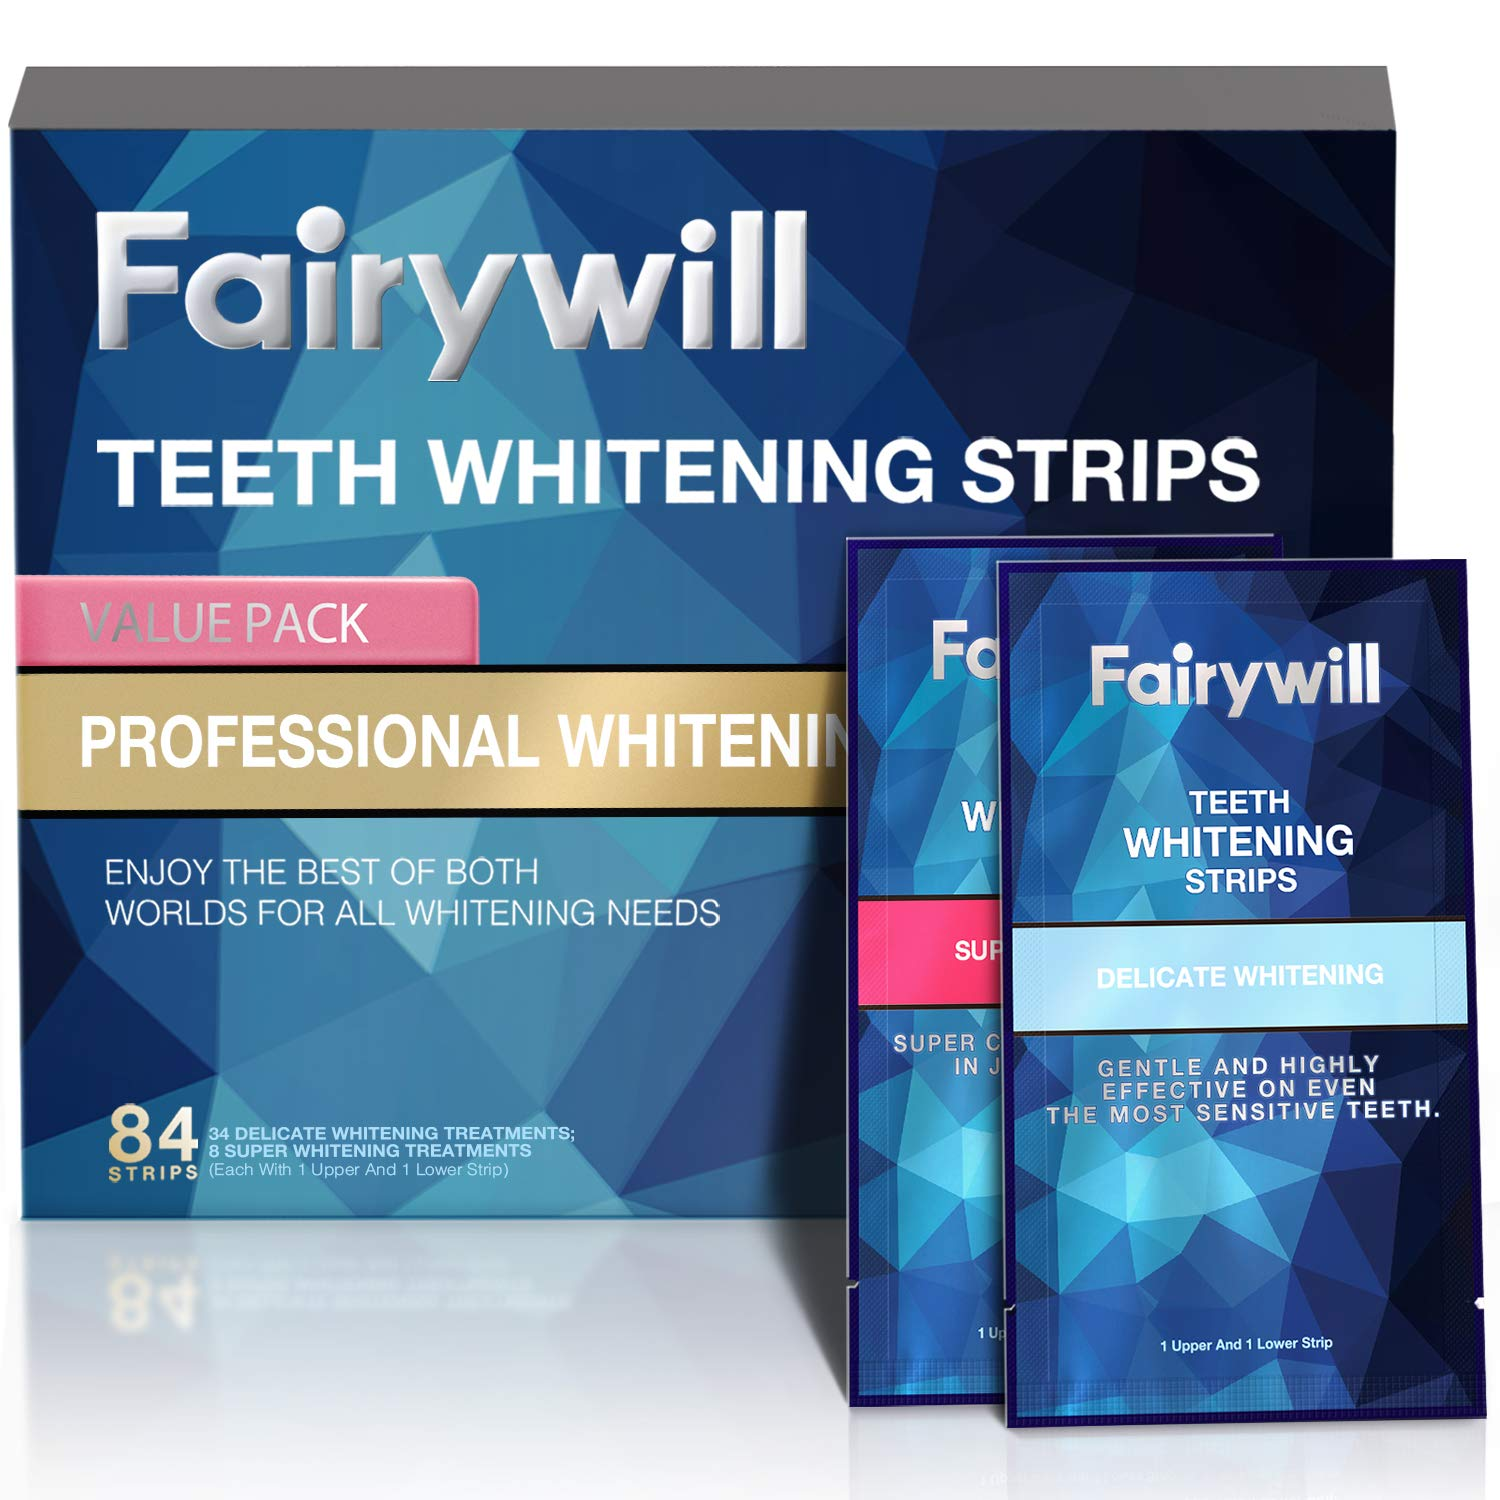 Fairywill Whitening Strips Kits Pack of 84 Pcs, Express Strips and Professional teeth whitening strips for 1 Hour Teeth Whitening Remove Many Years Stains